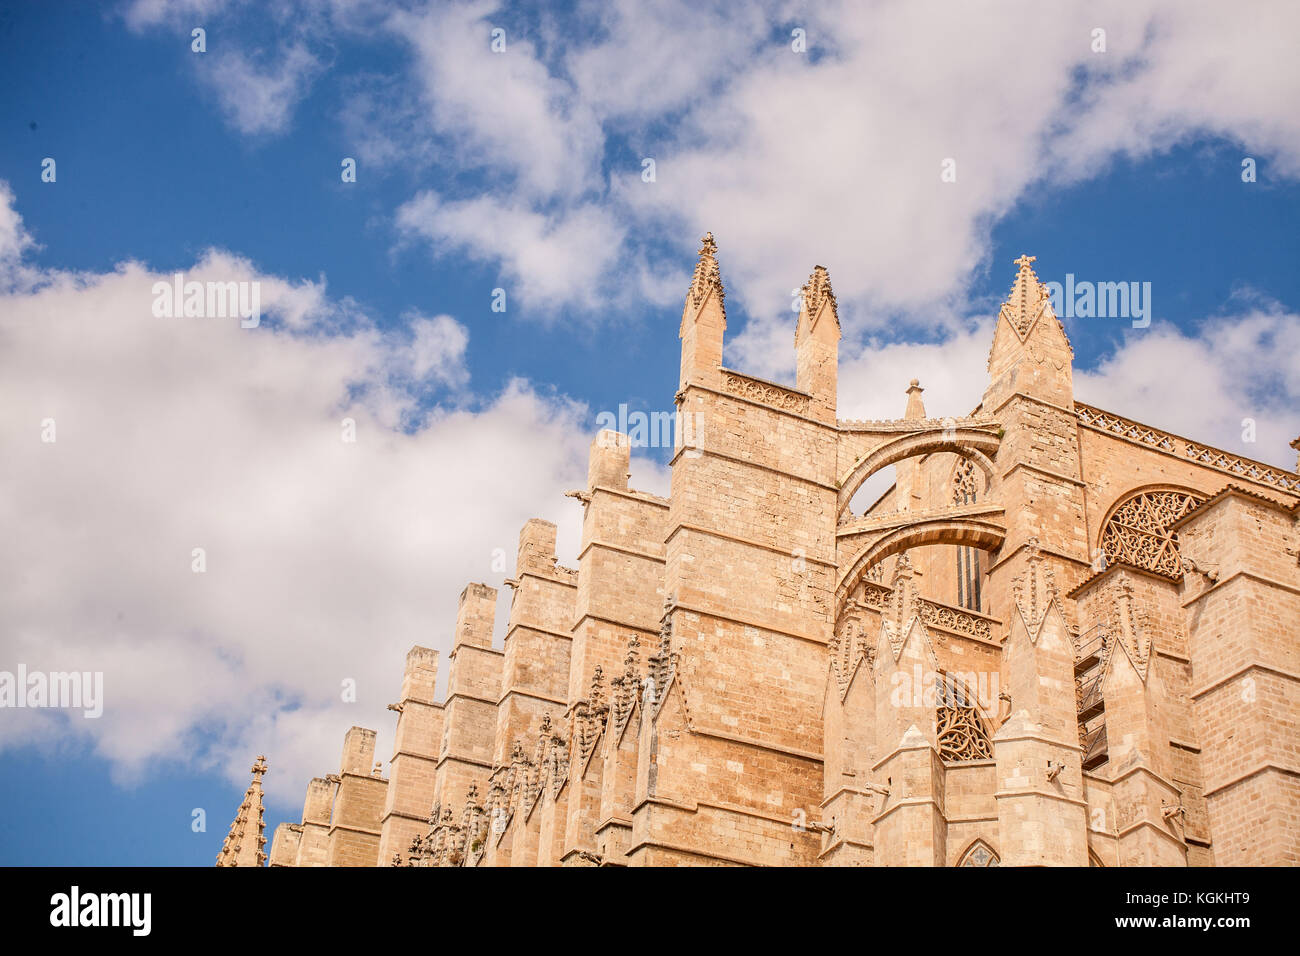 Cathedral Le Seu in Palma de Mallorca, a popular tourist destination Stock Photo